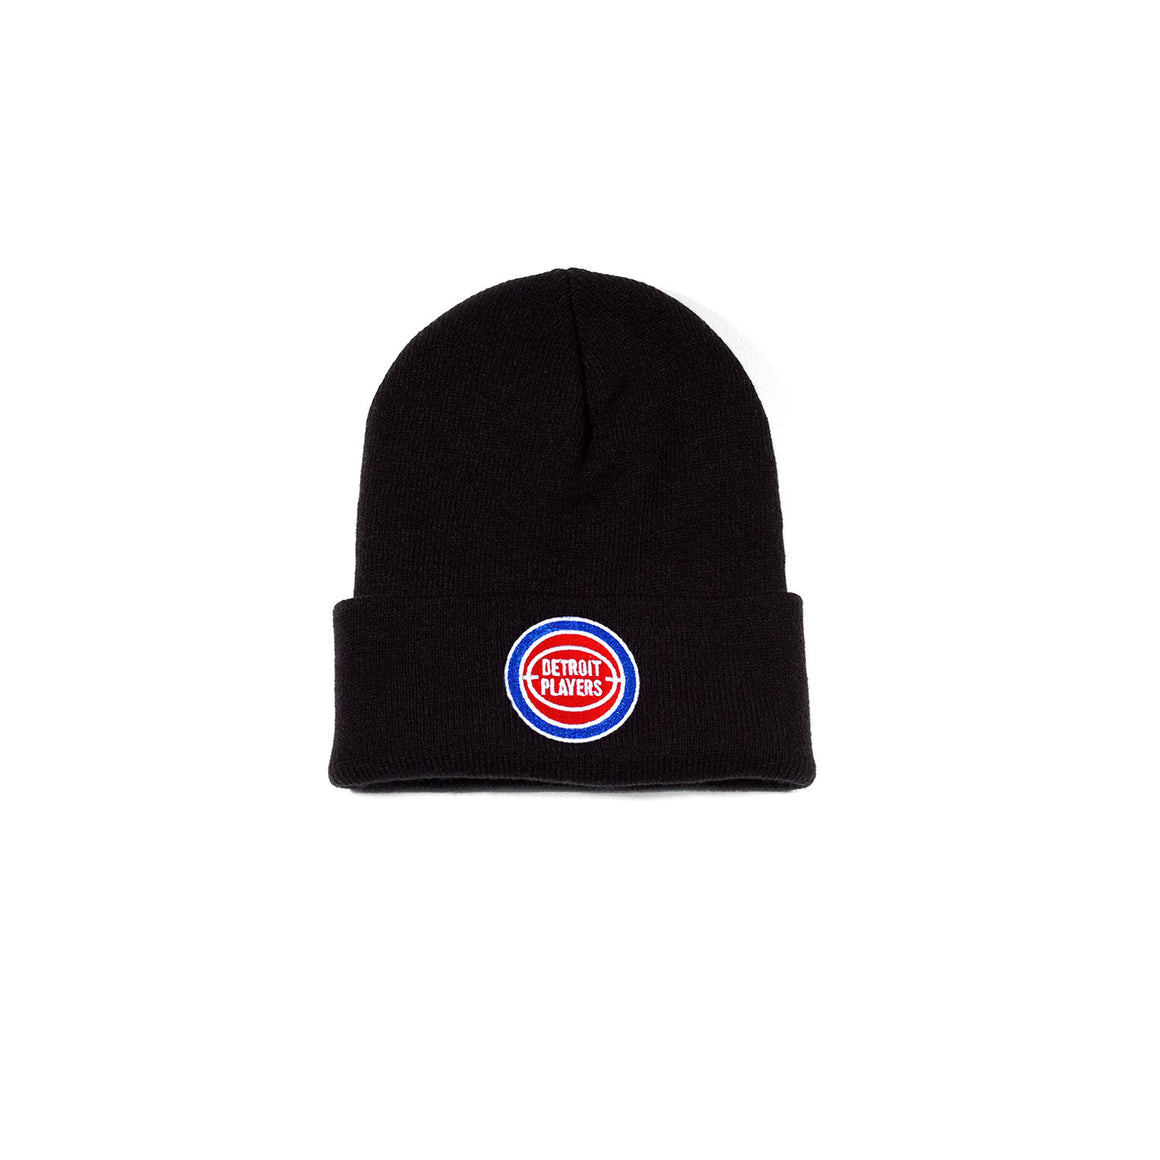 Detroit Players Beanie | Black